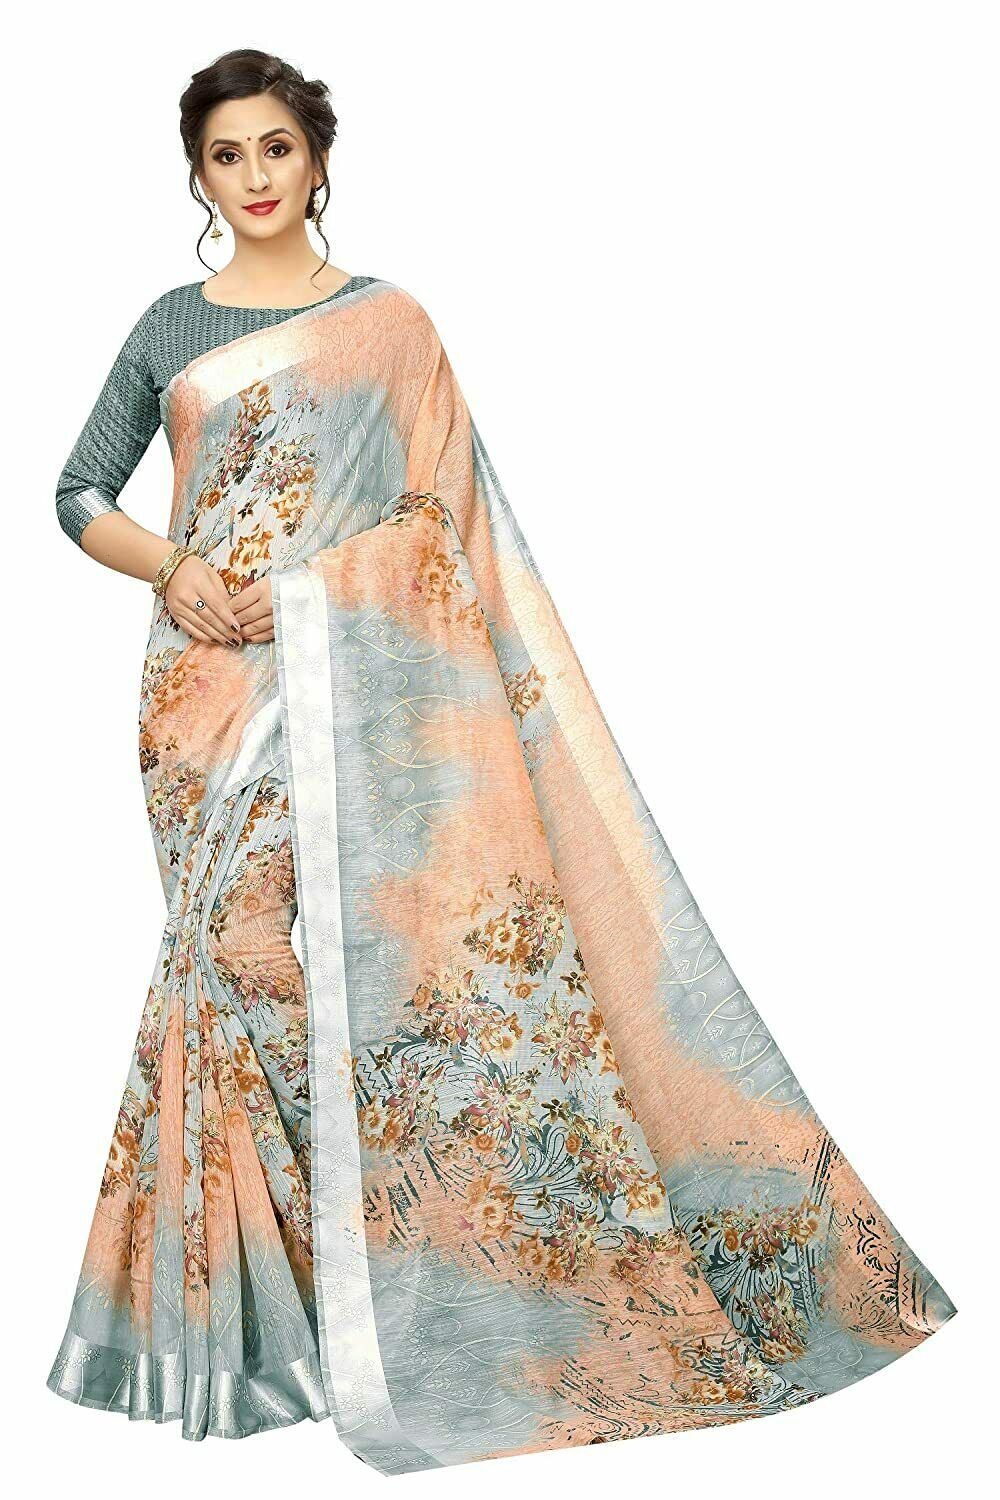 Indian Women's Digital Linen Saree with Unstitched Blouse Piece (DiGiMusty)PB